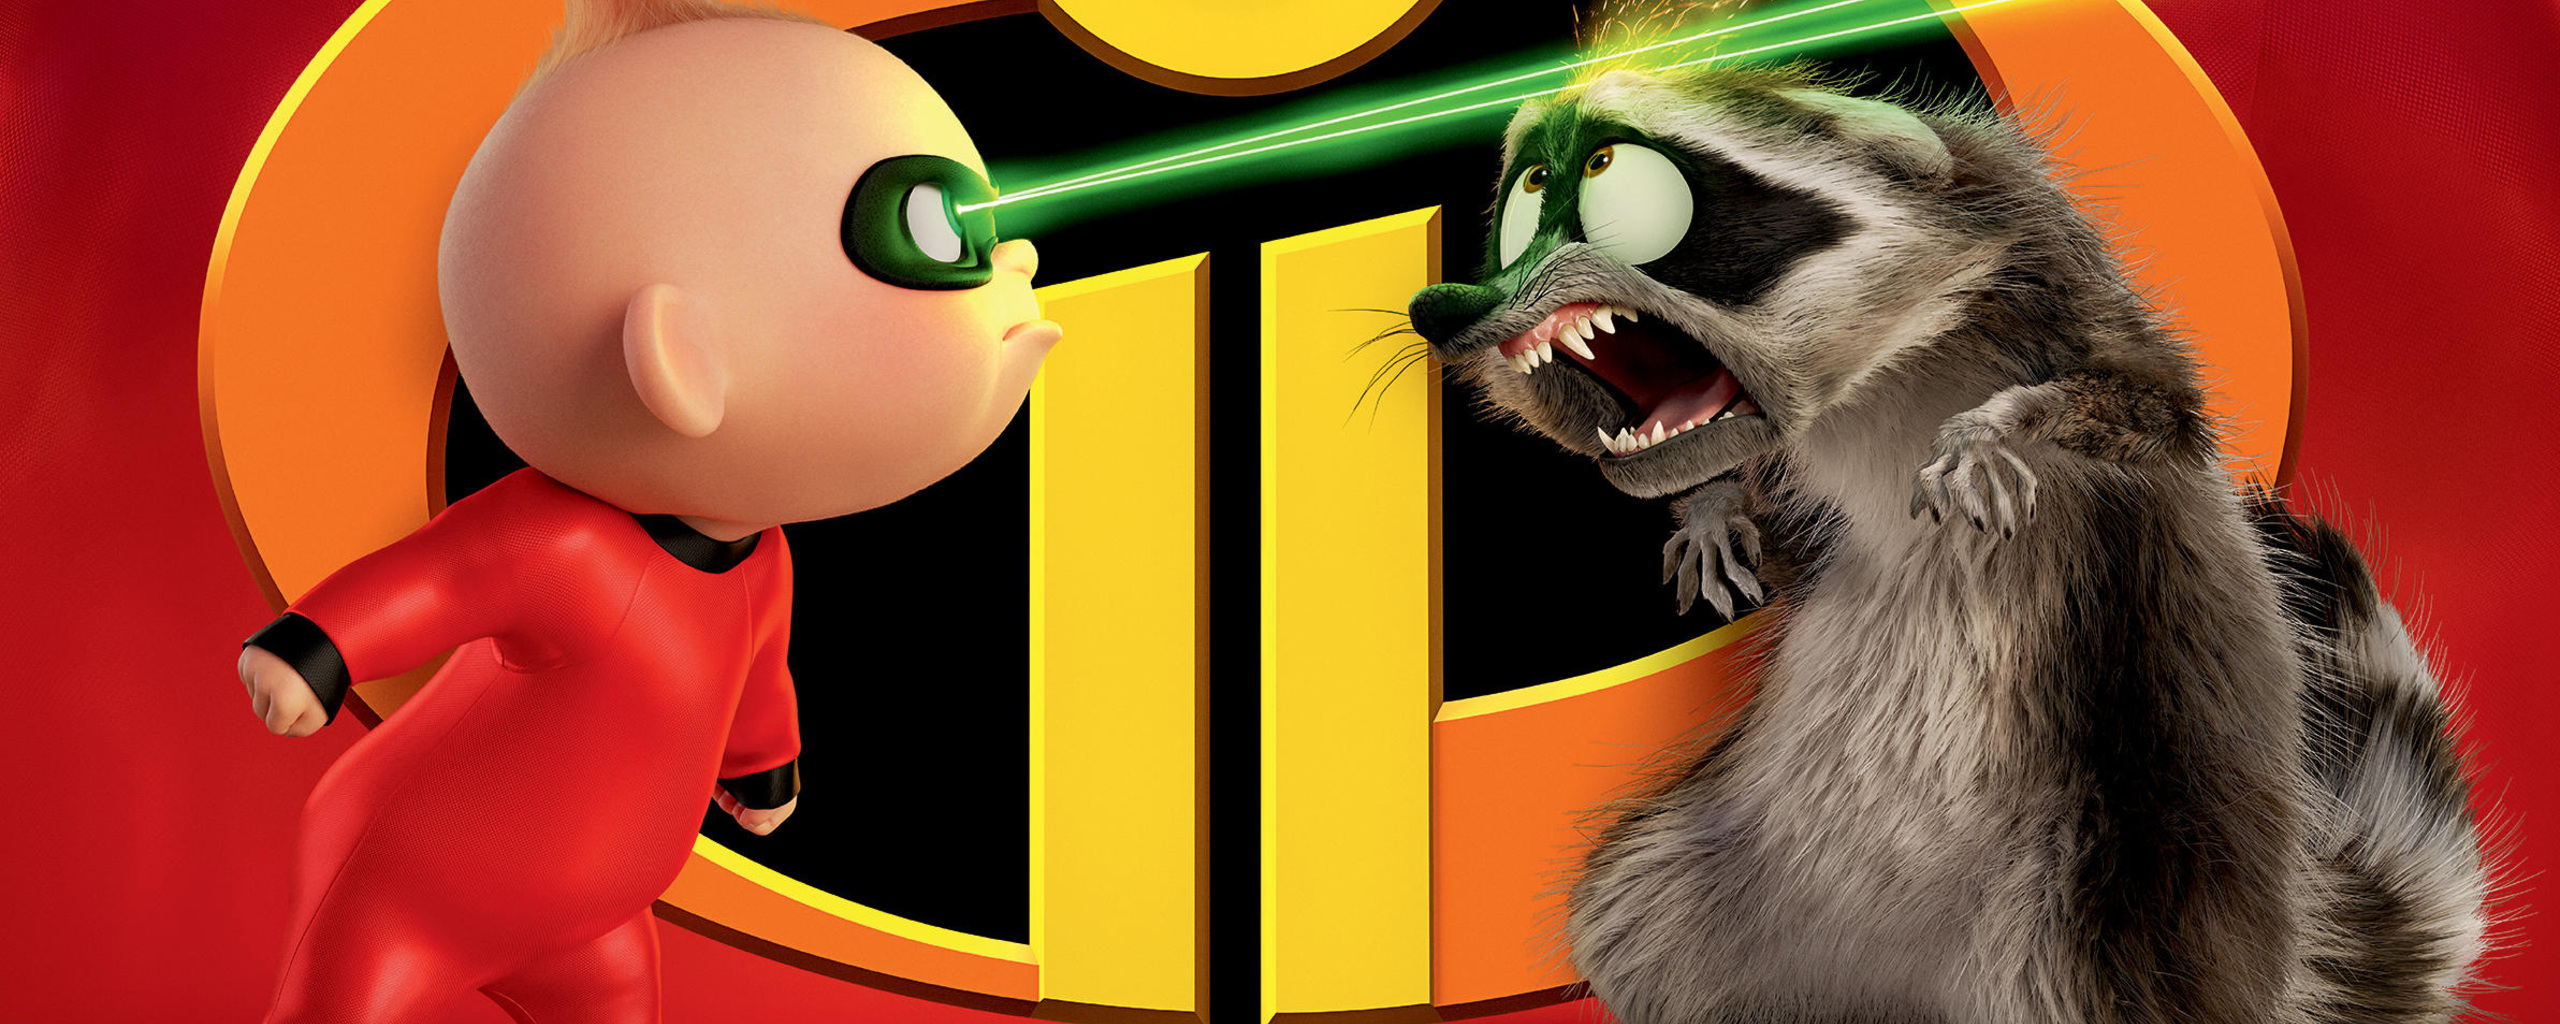 jack-jack-parr-and-raccoon-in-the-incredibles-2-cx.jpg